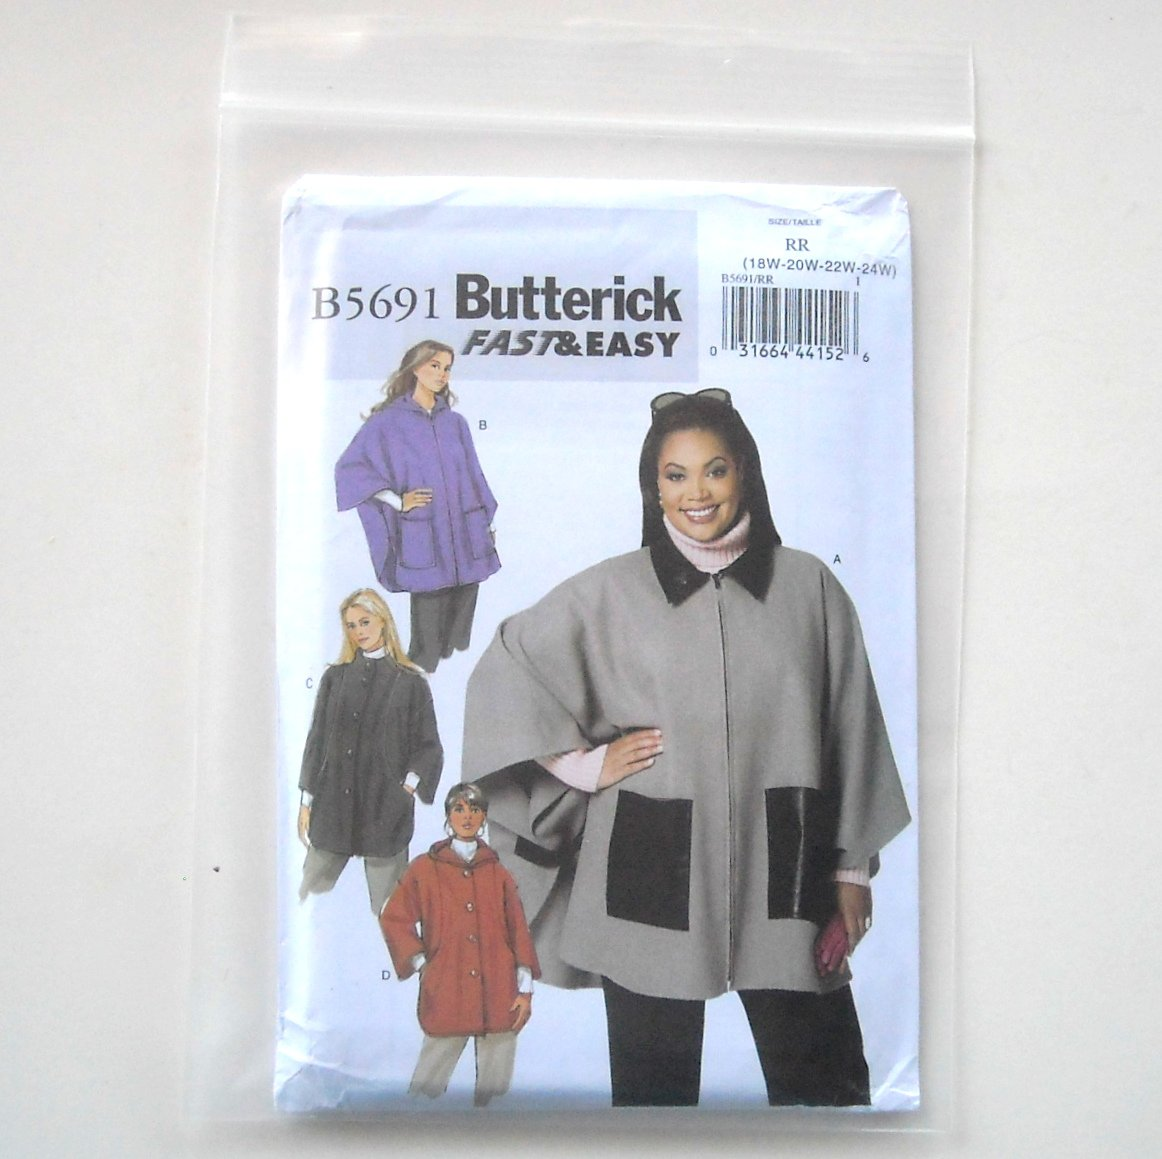 Butterick Pattern B5691 Size 18W - 24W Fast Easy Womens Cape and Jacket